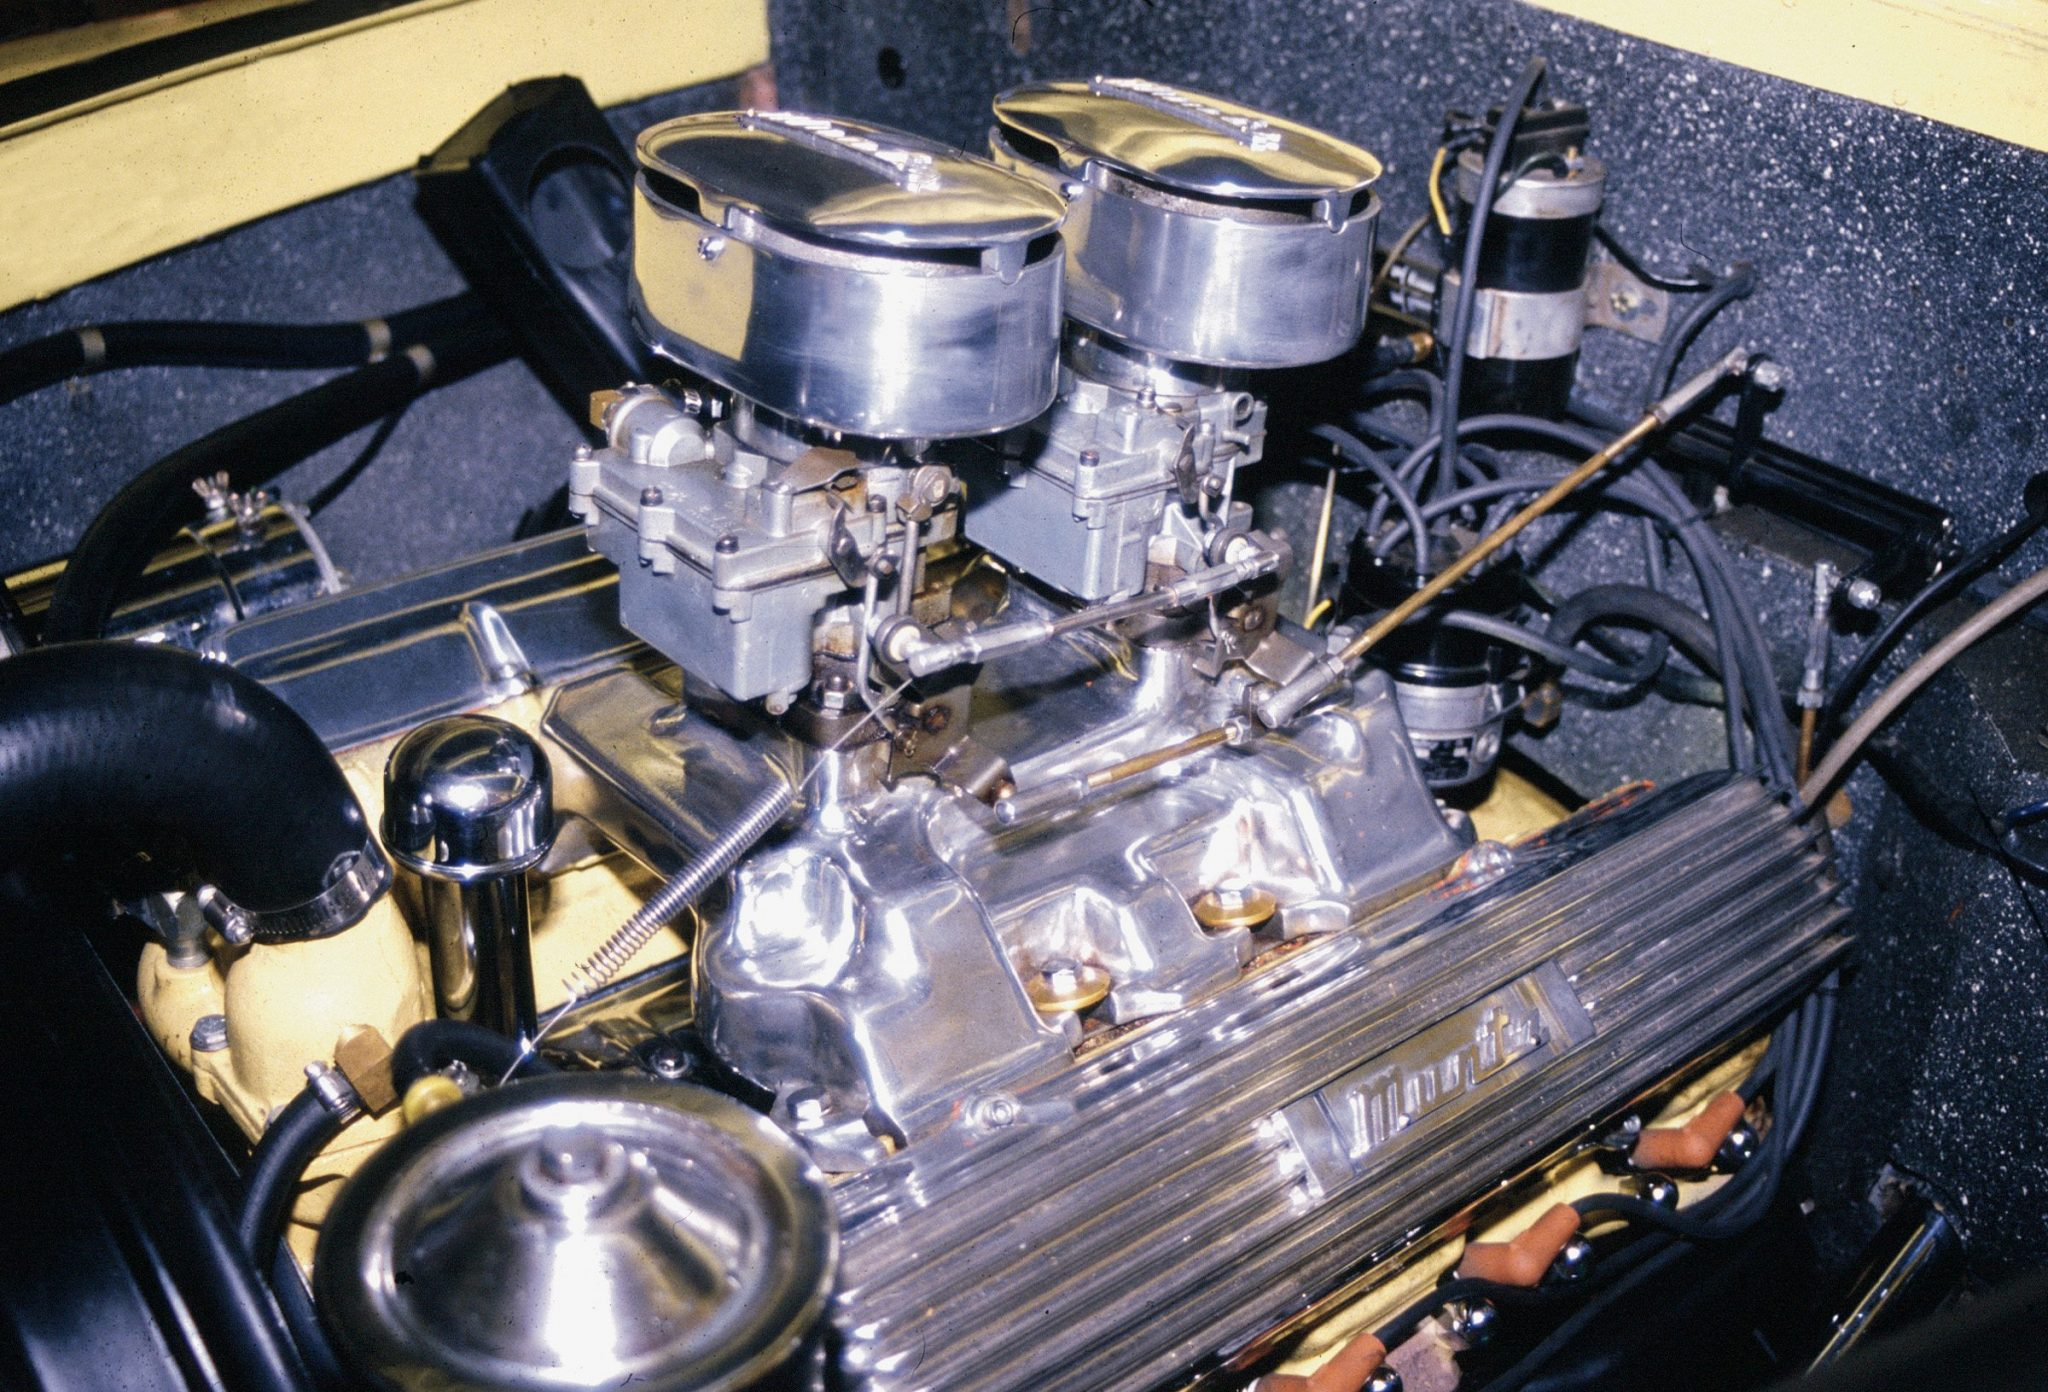 muntz jet v8 engine